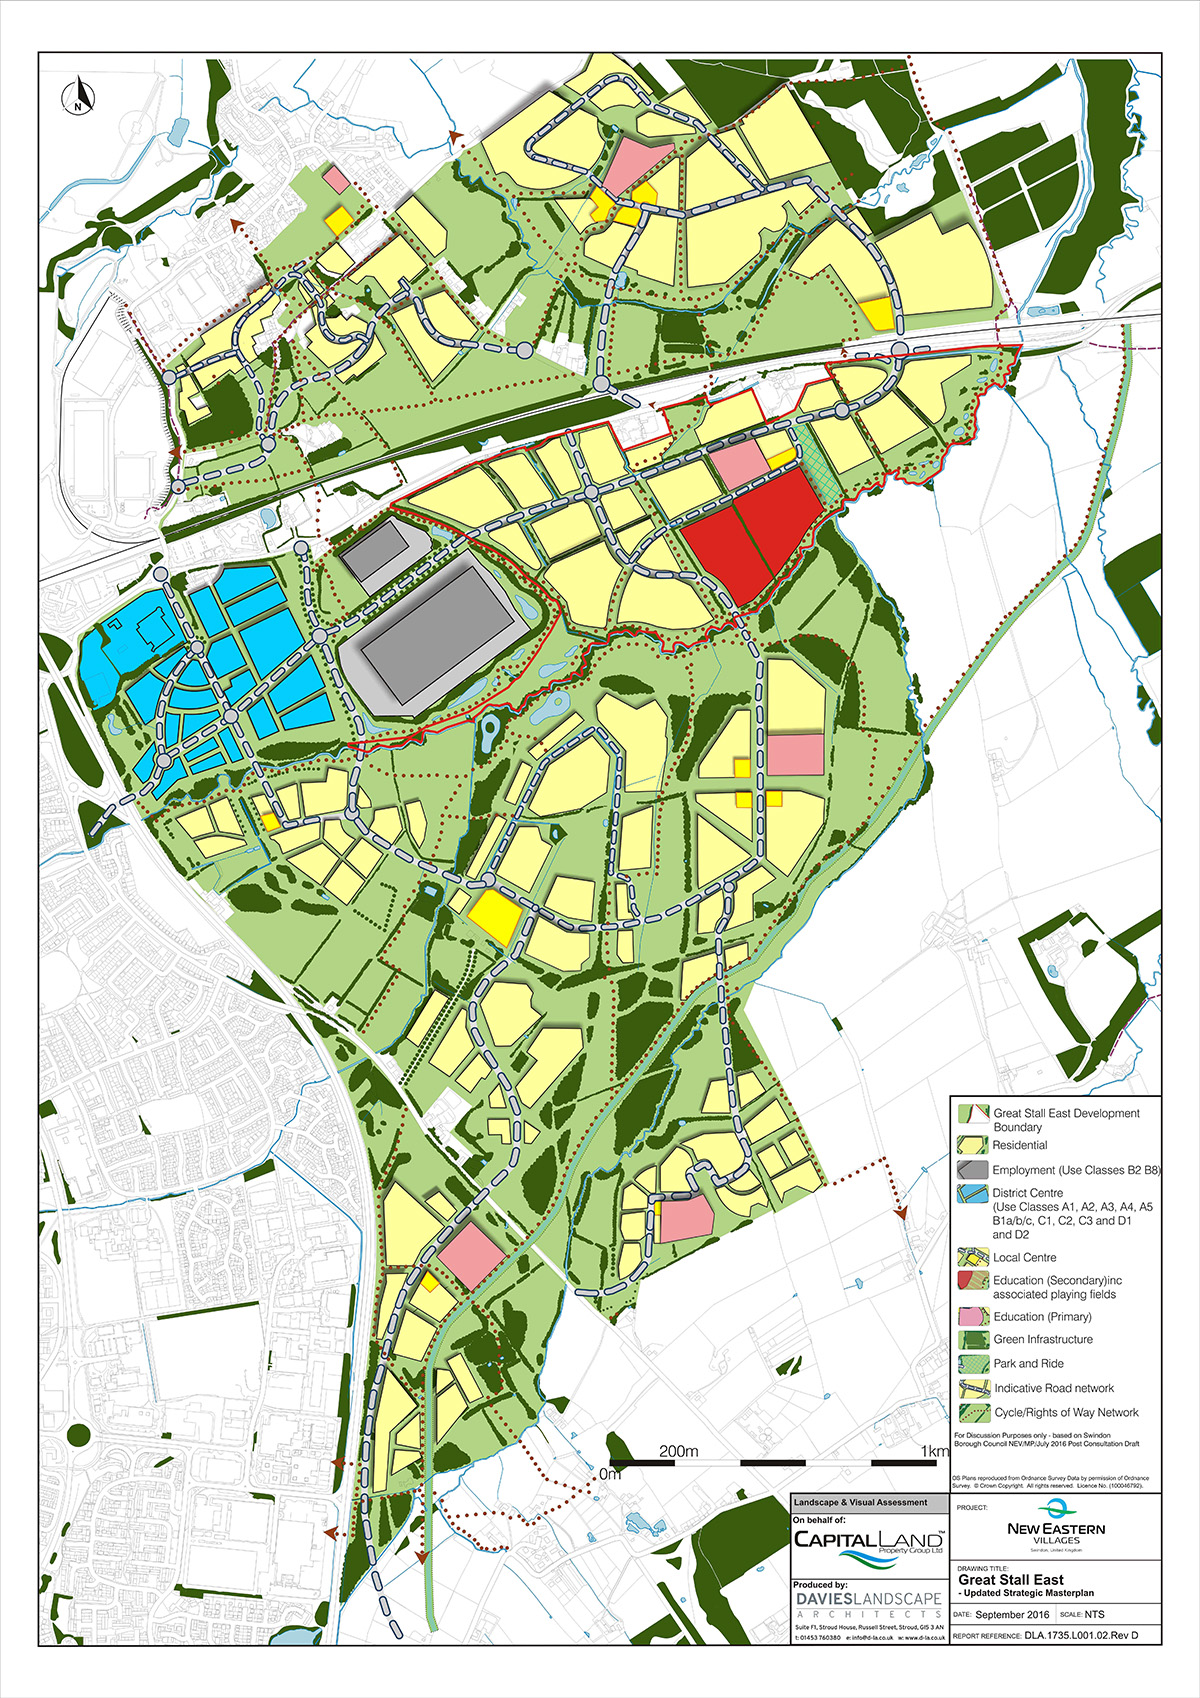 New Eastern Villages Masterplan